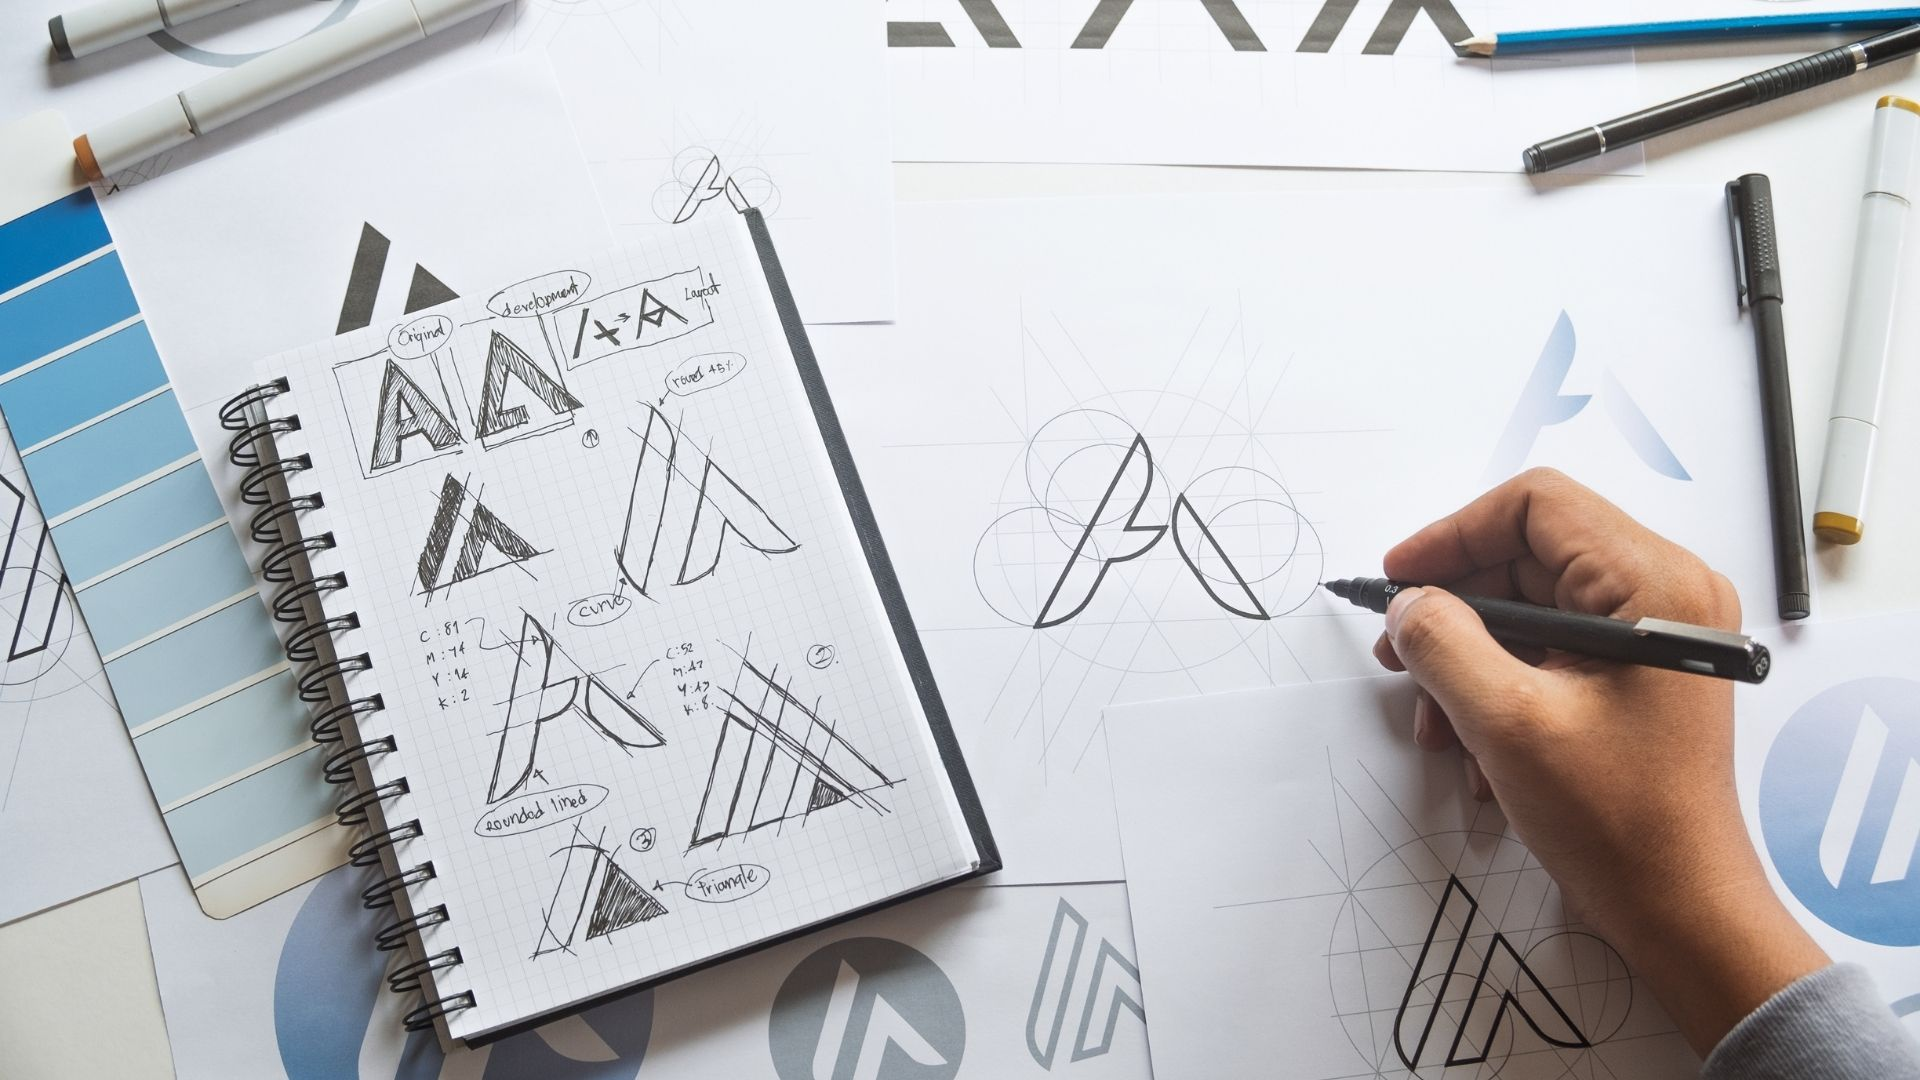 5 Key Elements of Brand Design